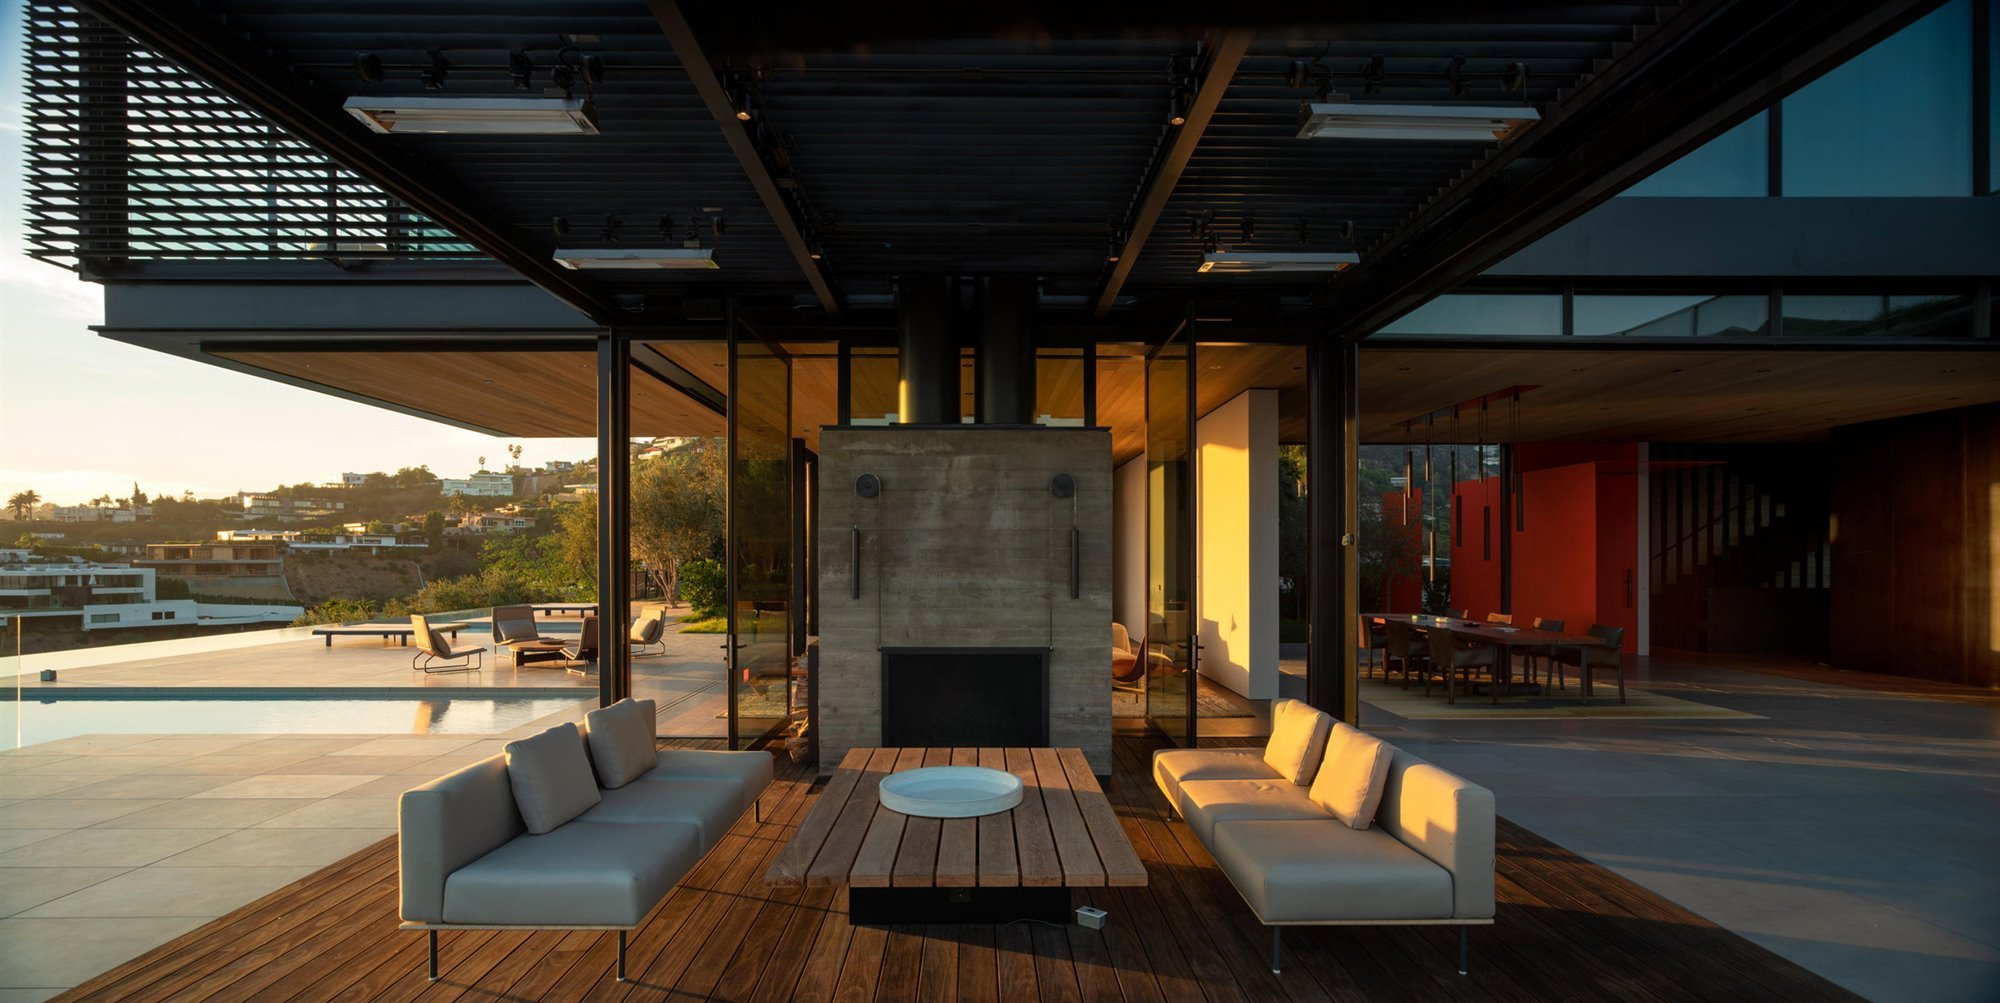 Casa en Collywood diseñada por Olson Kundig en Los angeles 23